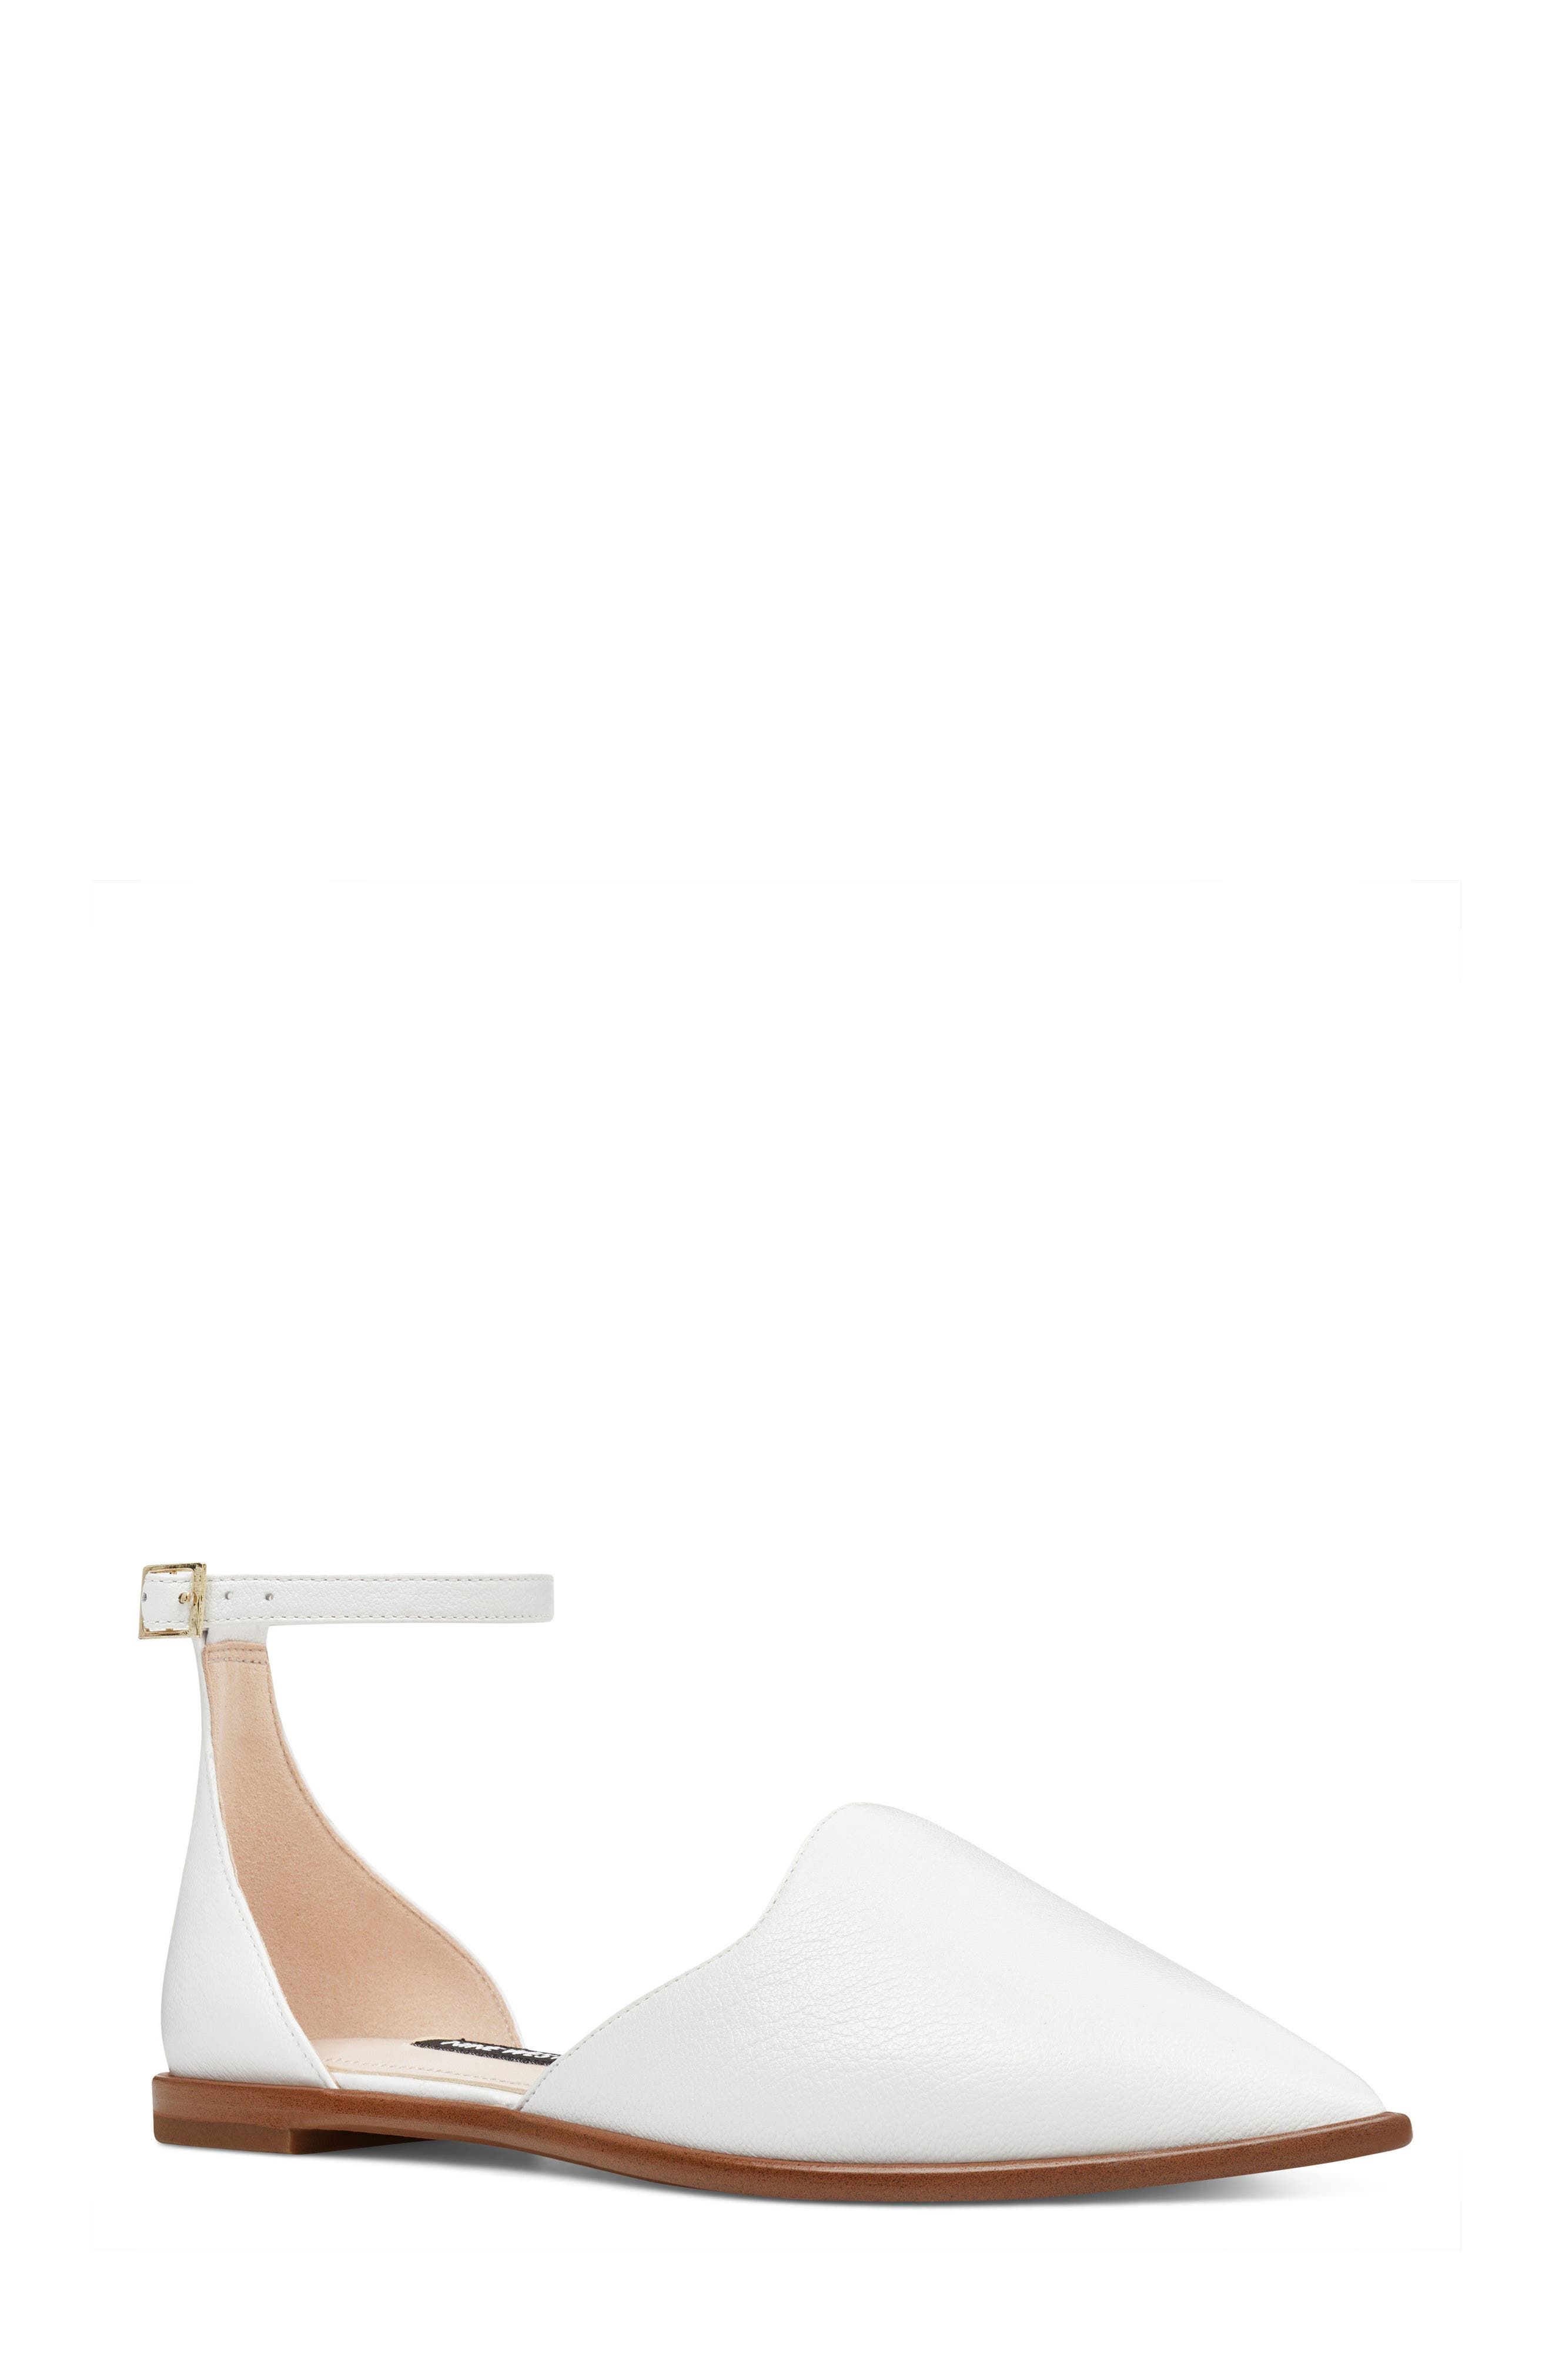 Oriona Ankle Strap Flat,                             Main thumbnail 1, color,                             White Leather